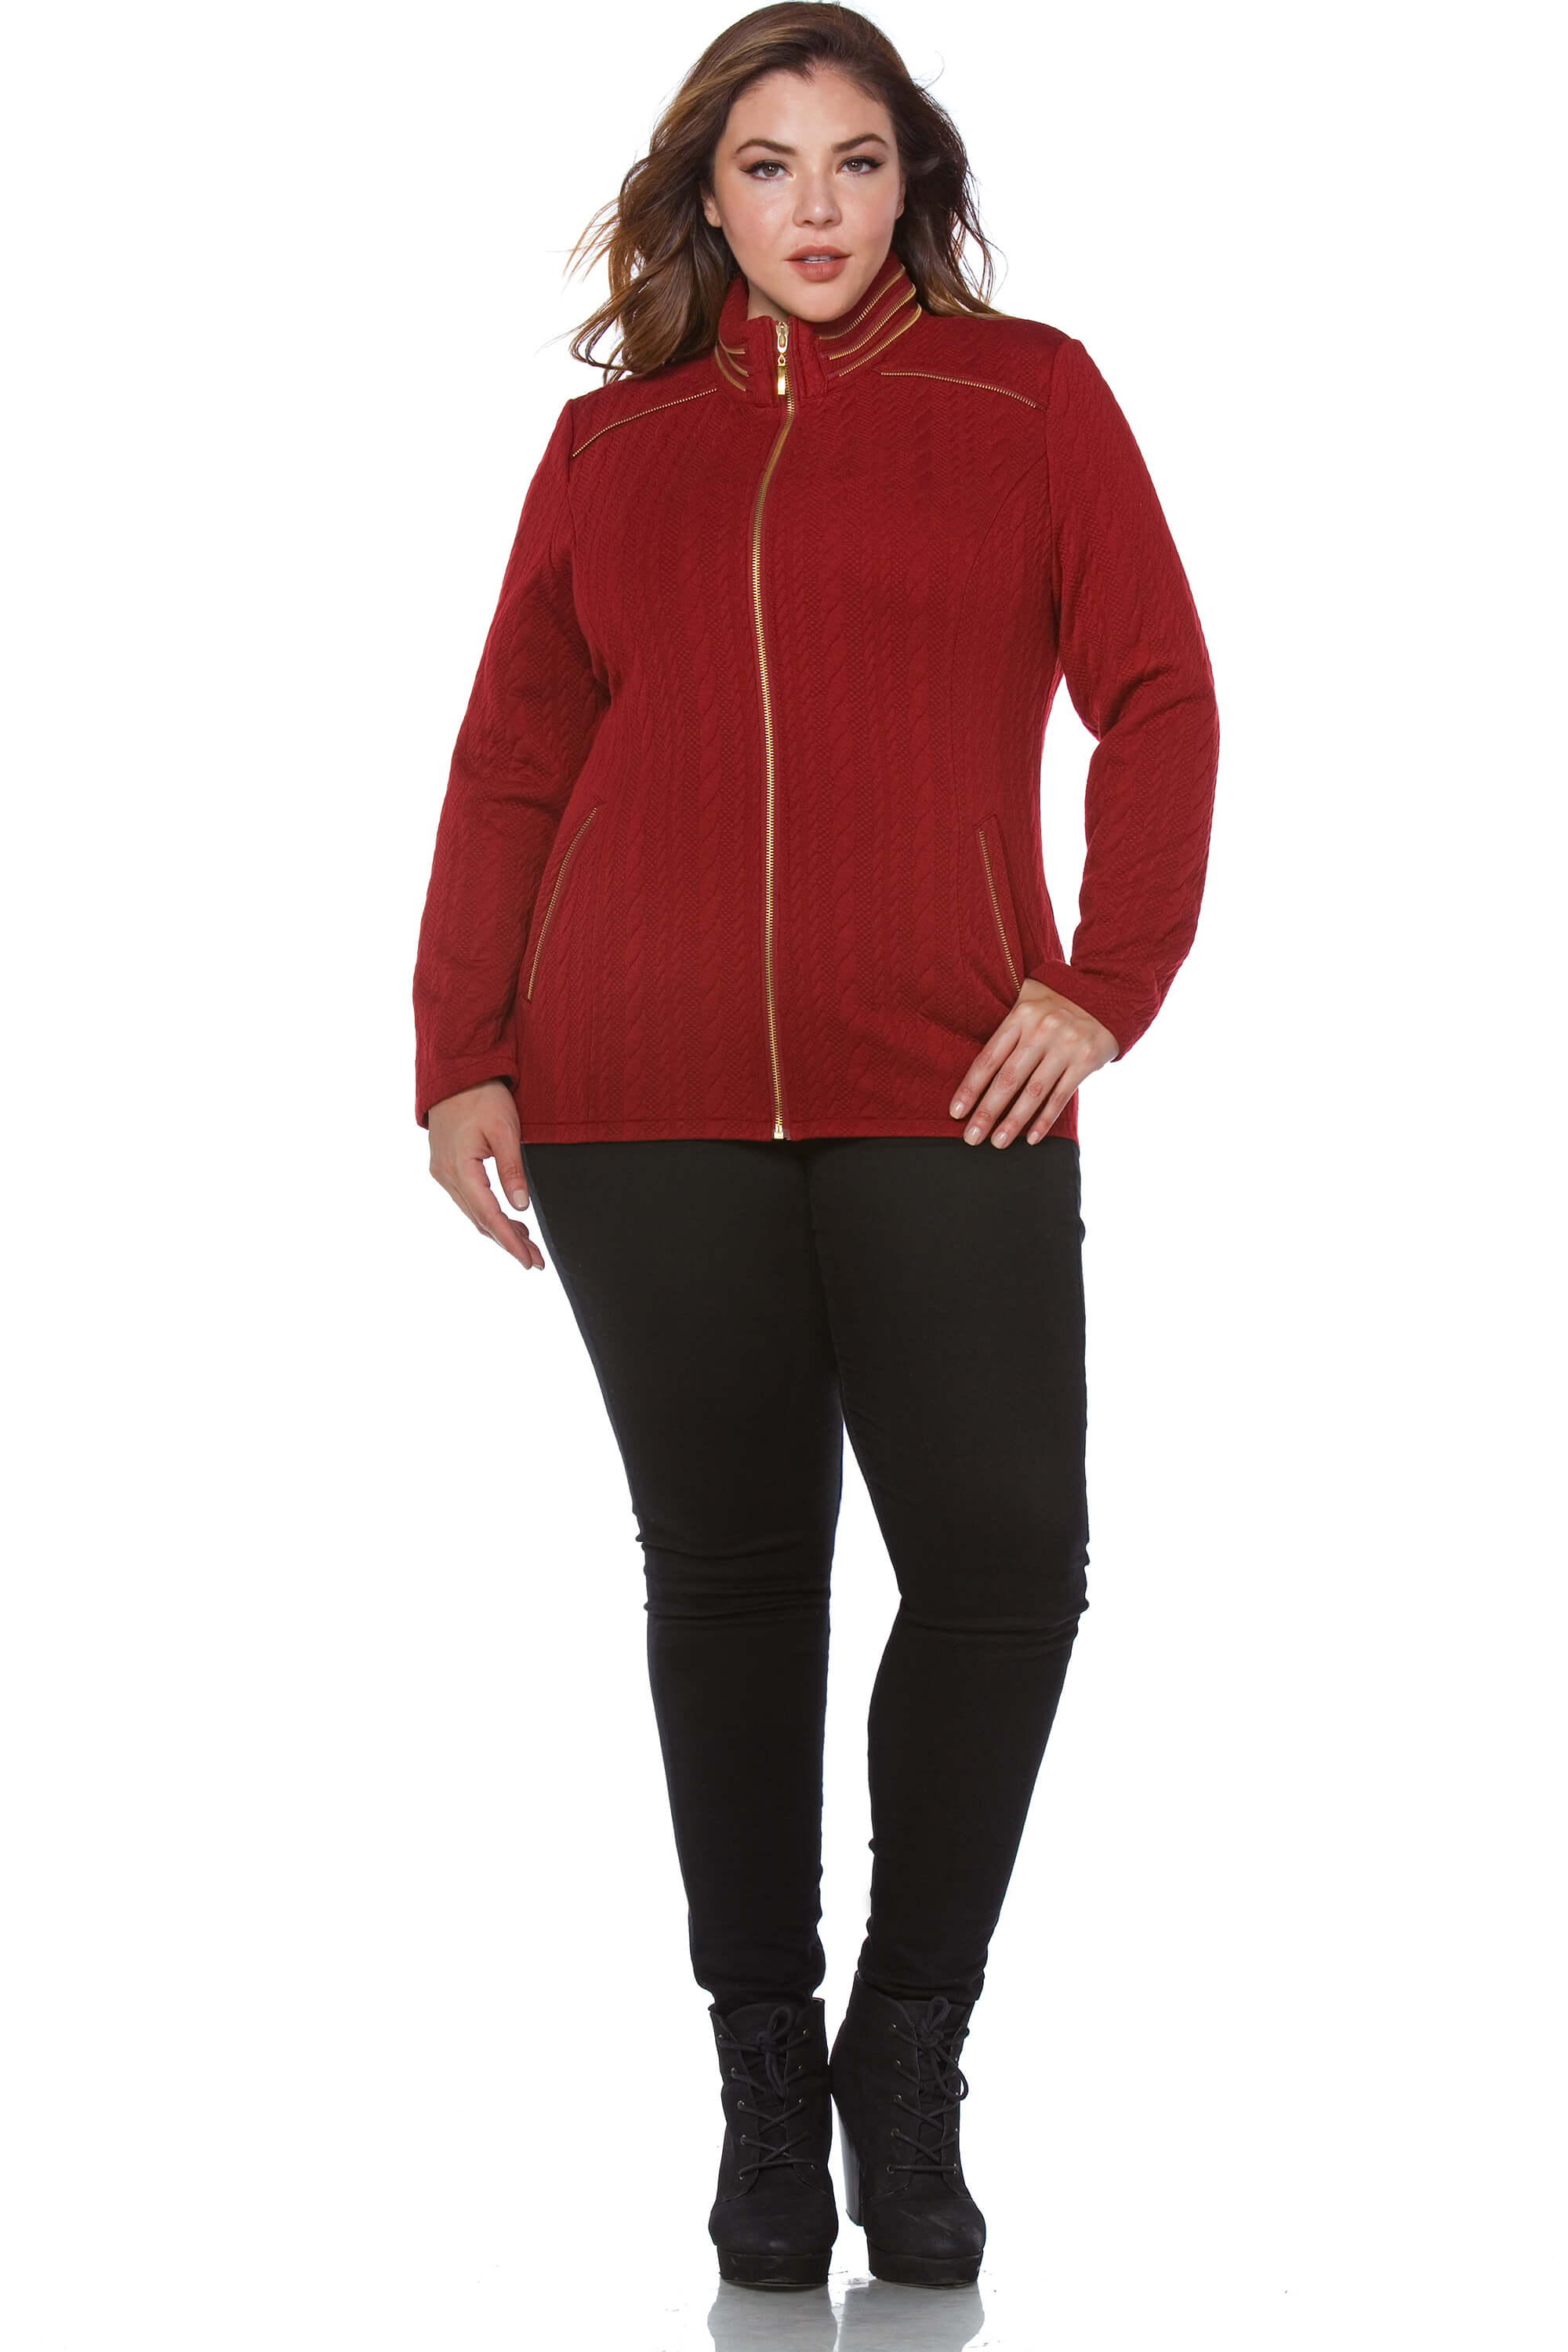 Rhea Plus Size Women's Rope Texture Jacket